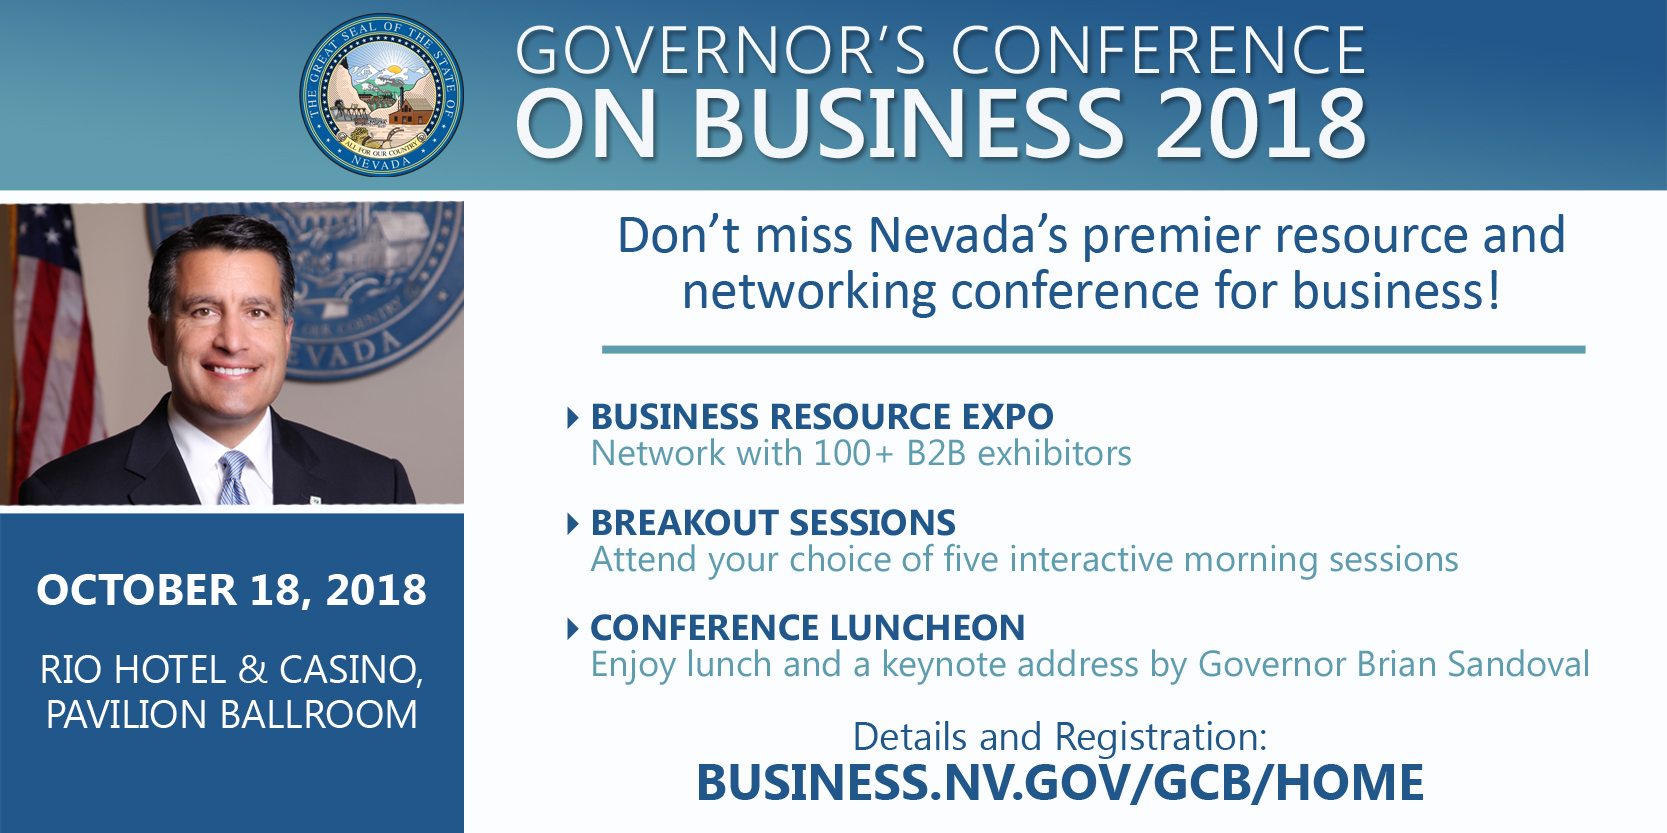 Governor's Conference on Business 2018